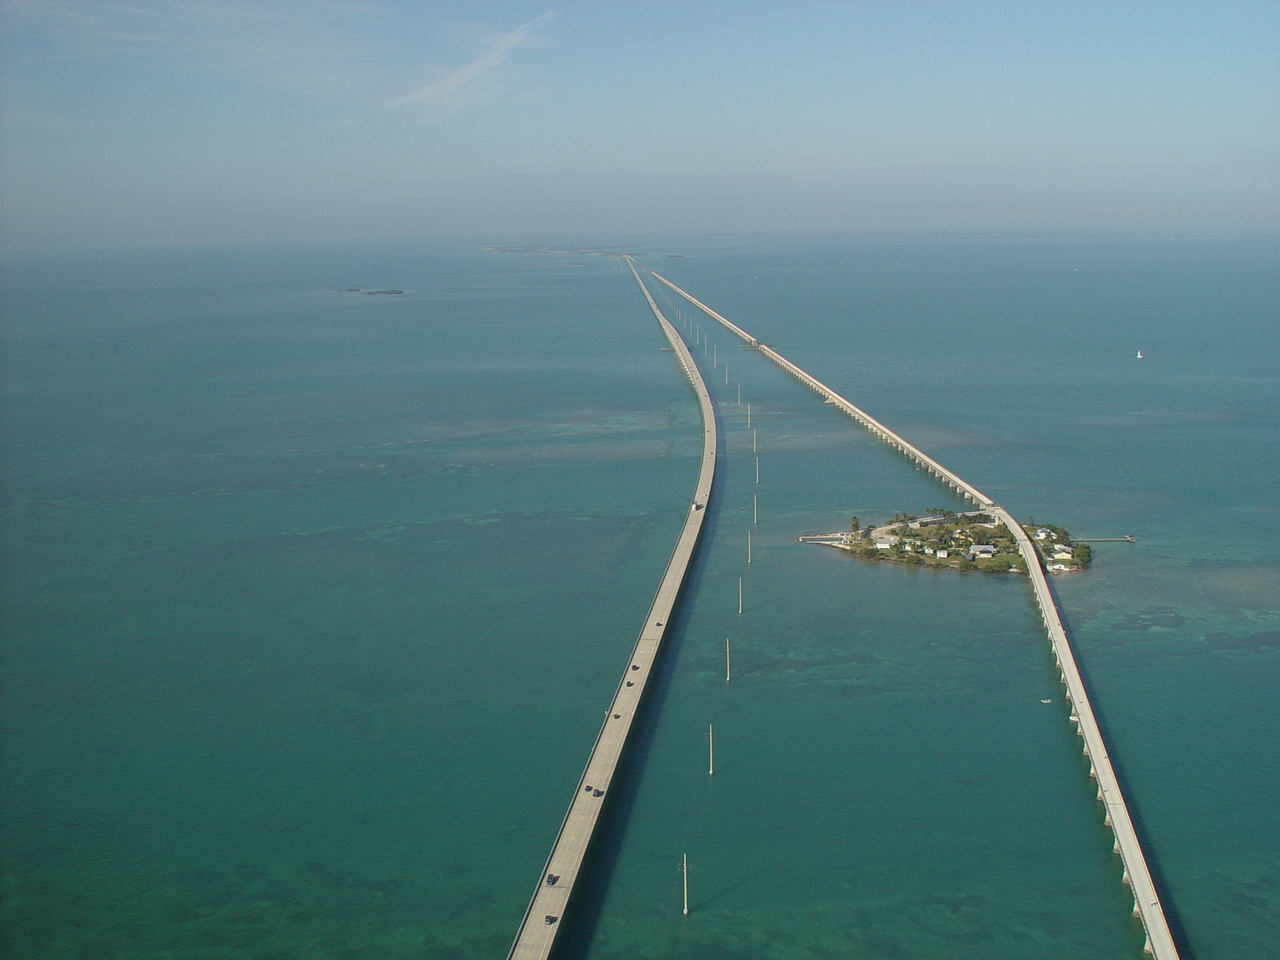 Florida's Overseas Highway